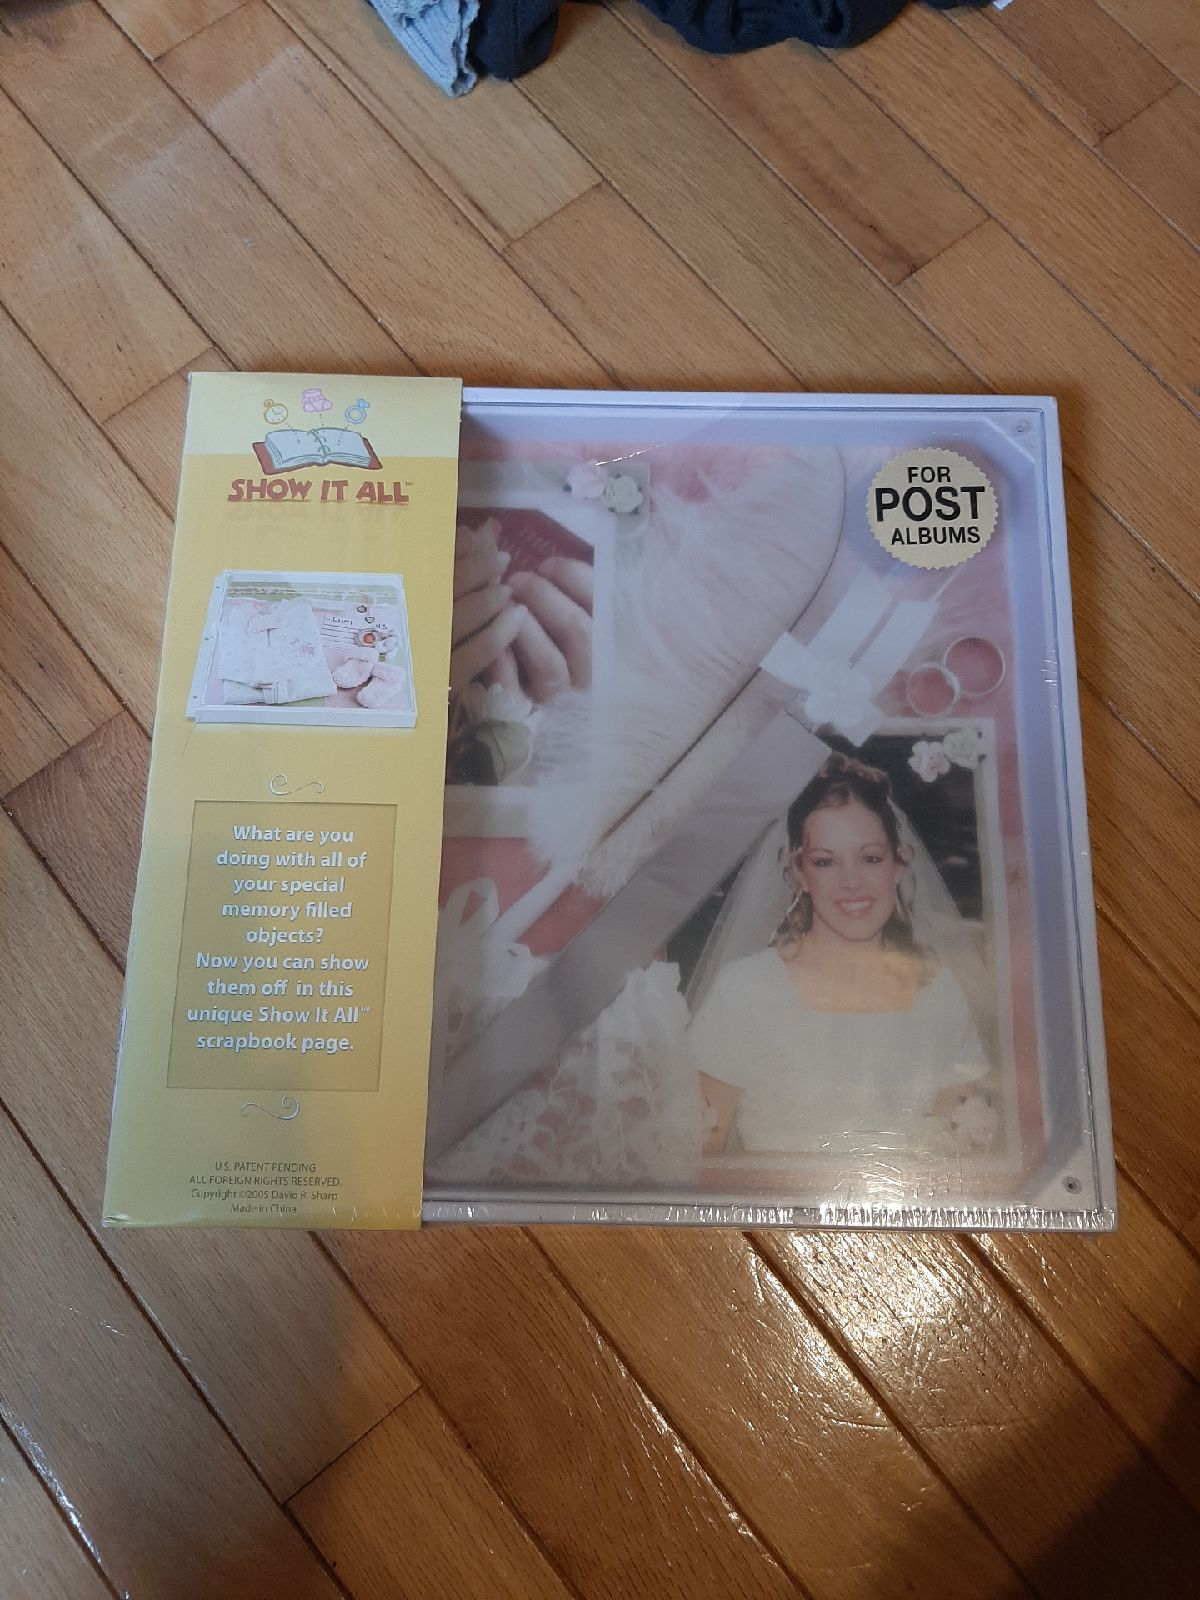 Show it all scrapbooking case/ frame